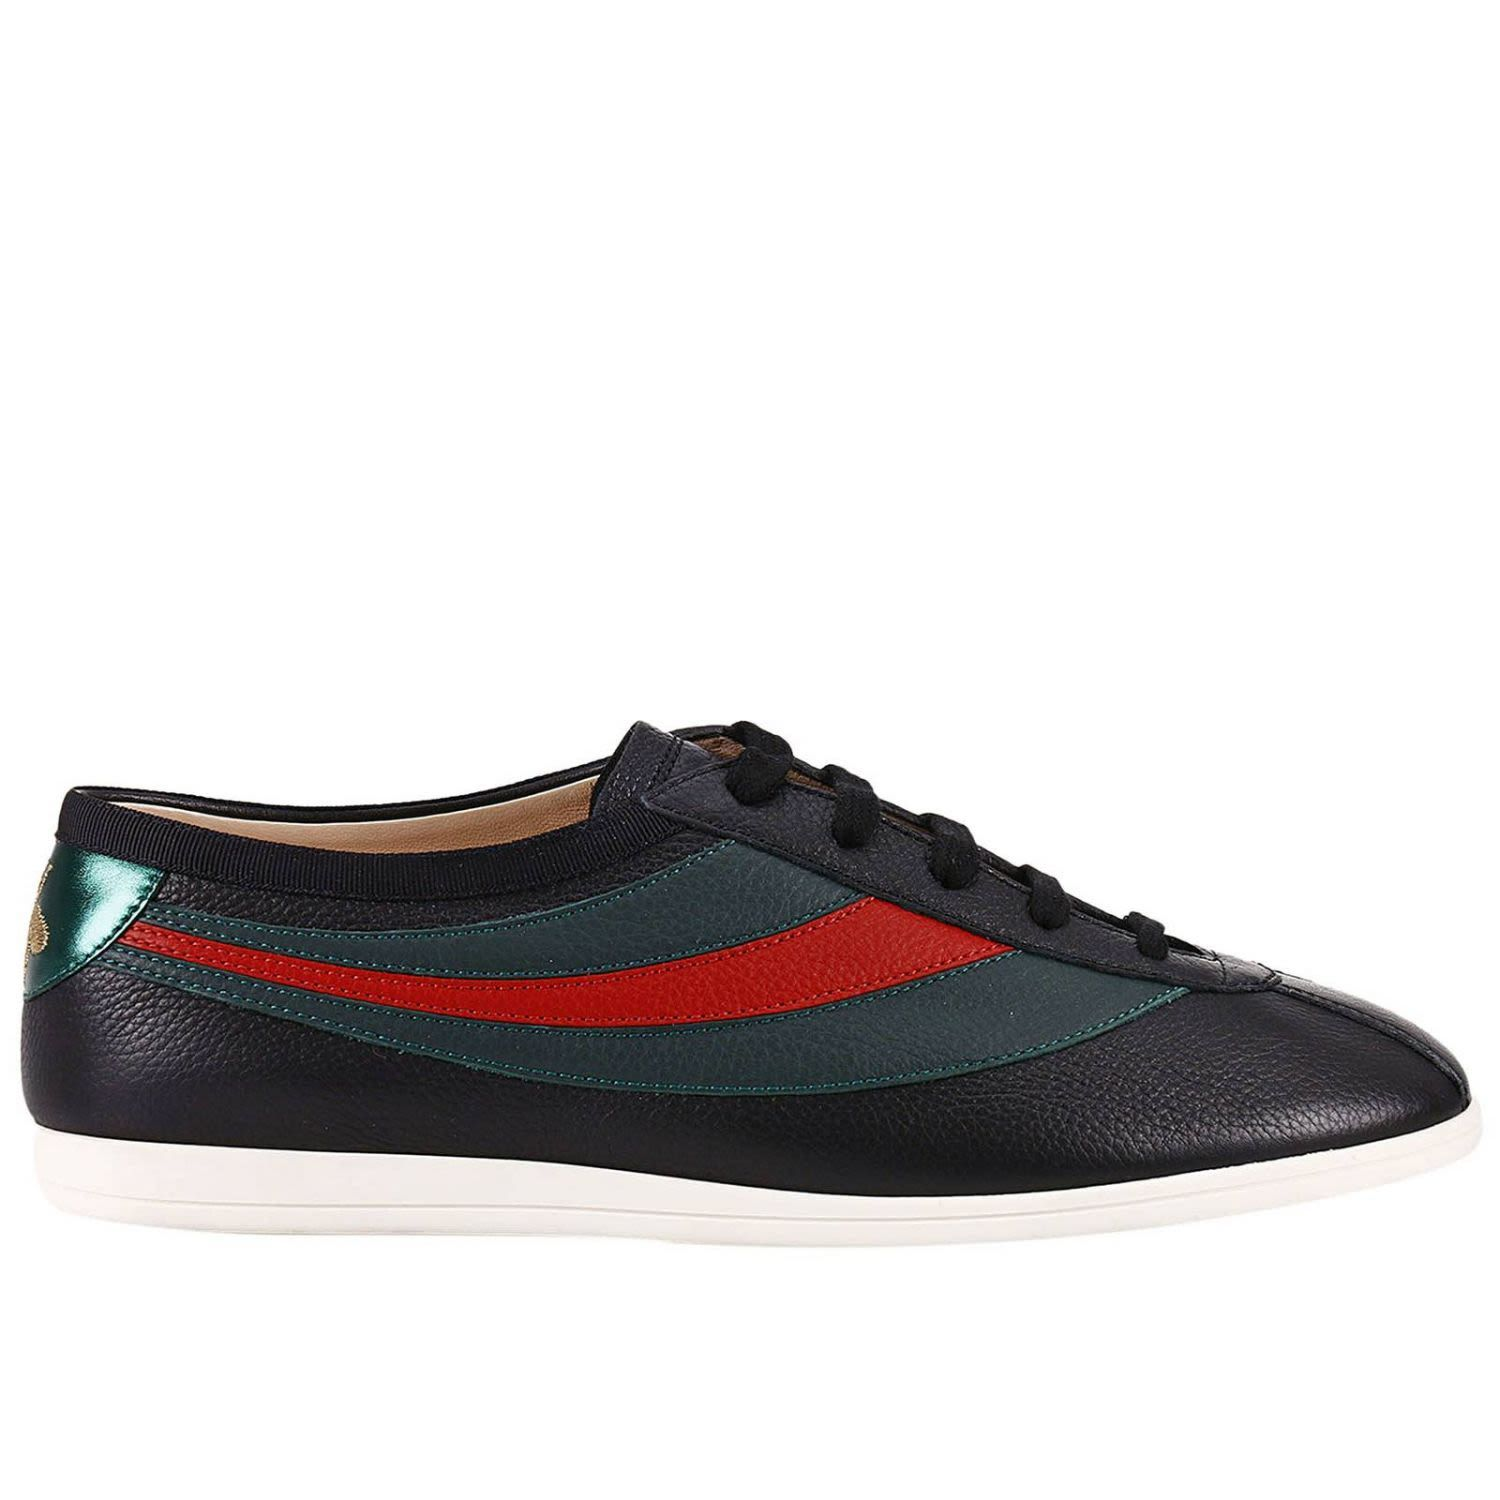 Gucci Falacer Embroidered Textured